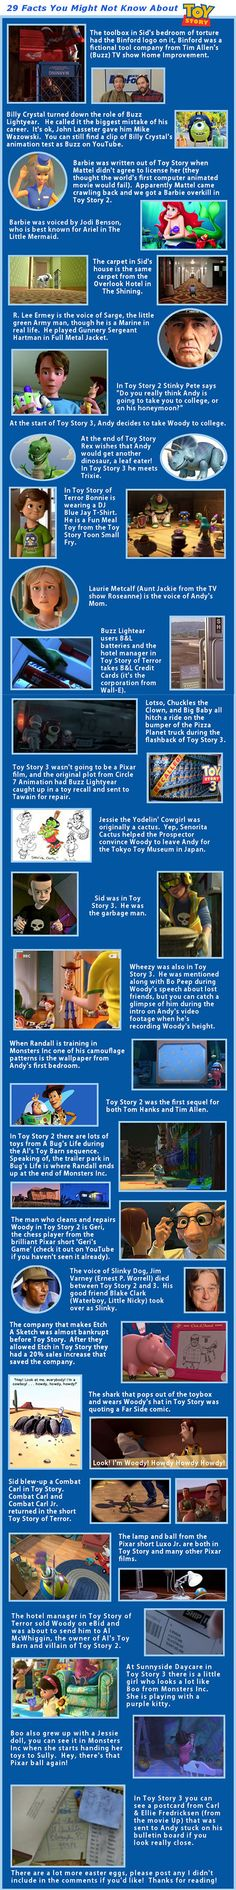 Here are 29 fun facts you may not have known about Toy Story.